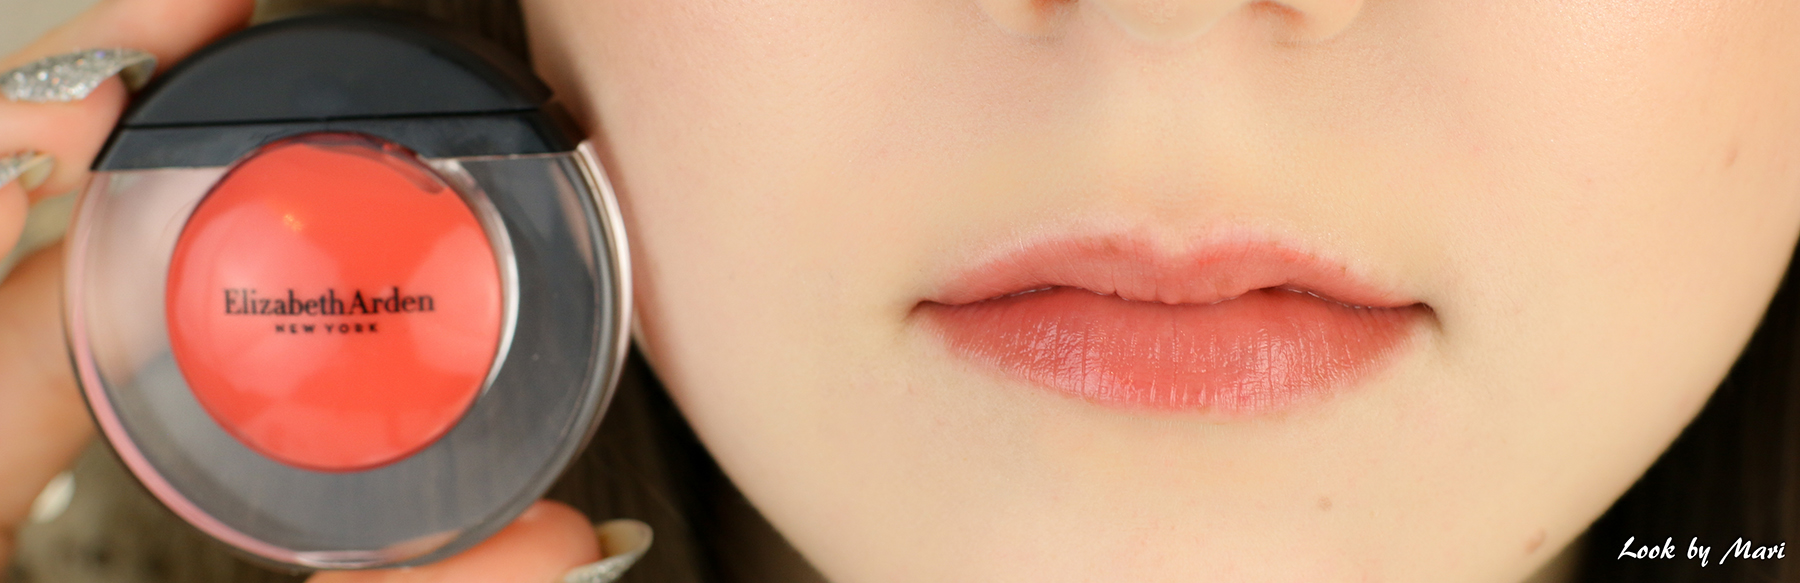 16 elizabeth arden sheer kiss lip oil review swatches coral caress swatch kokemuksia